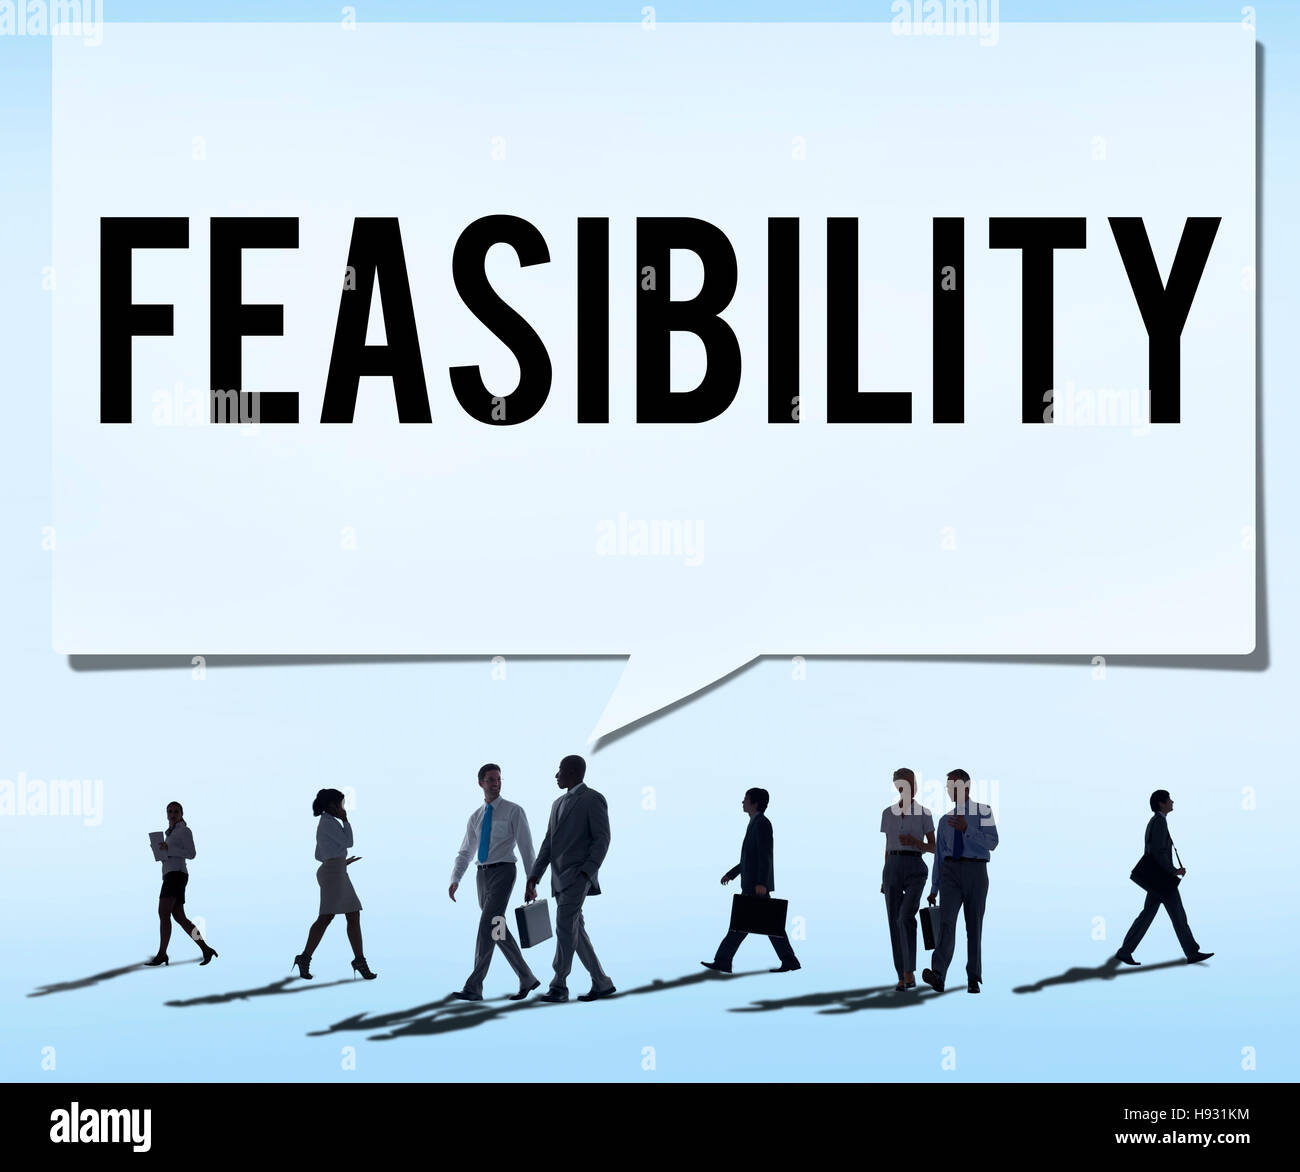 Feasibility Possibility Possible Potential Ideas Concept - Stock Image